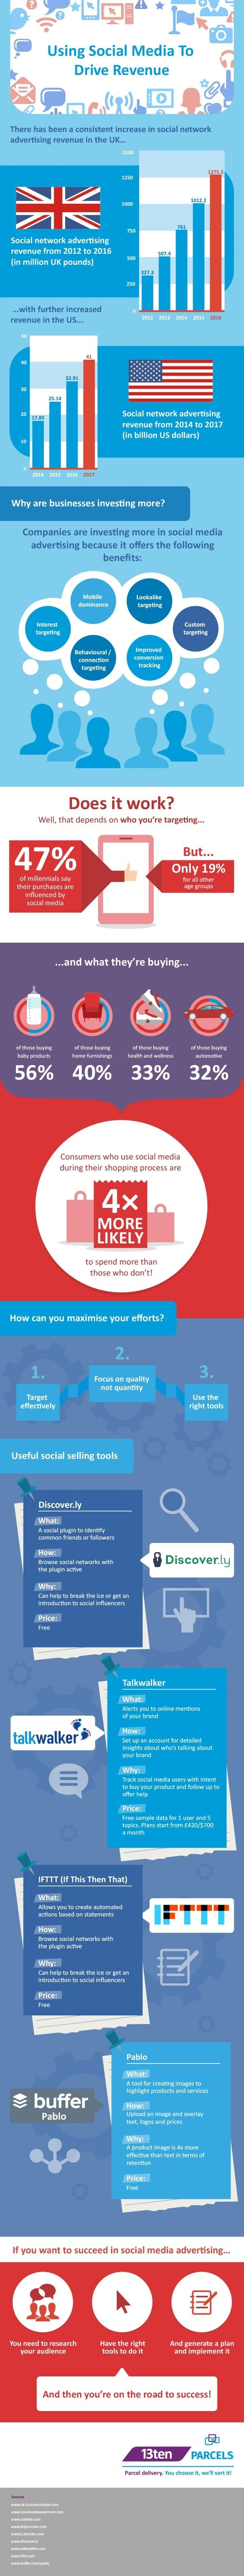 Using Social Media to Drive Ecommerce Revenue in 2016 - #Infographic